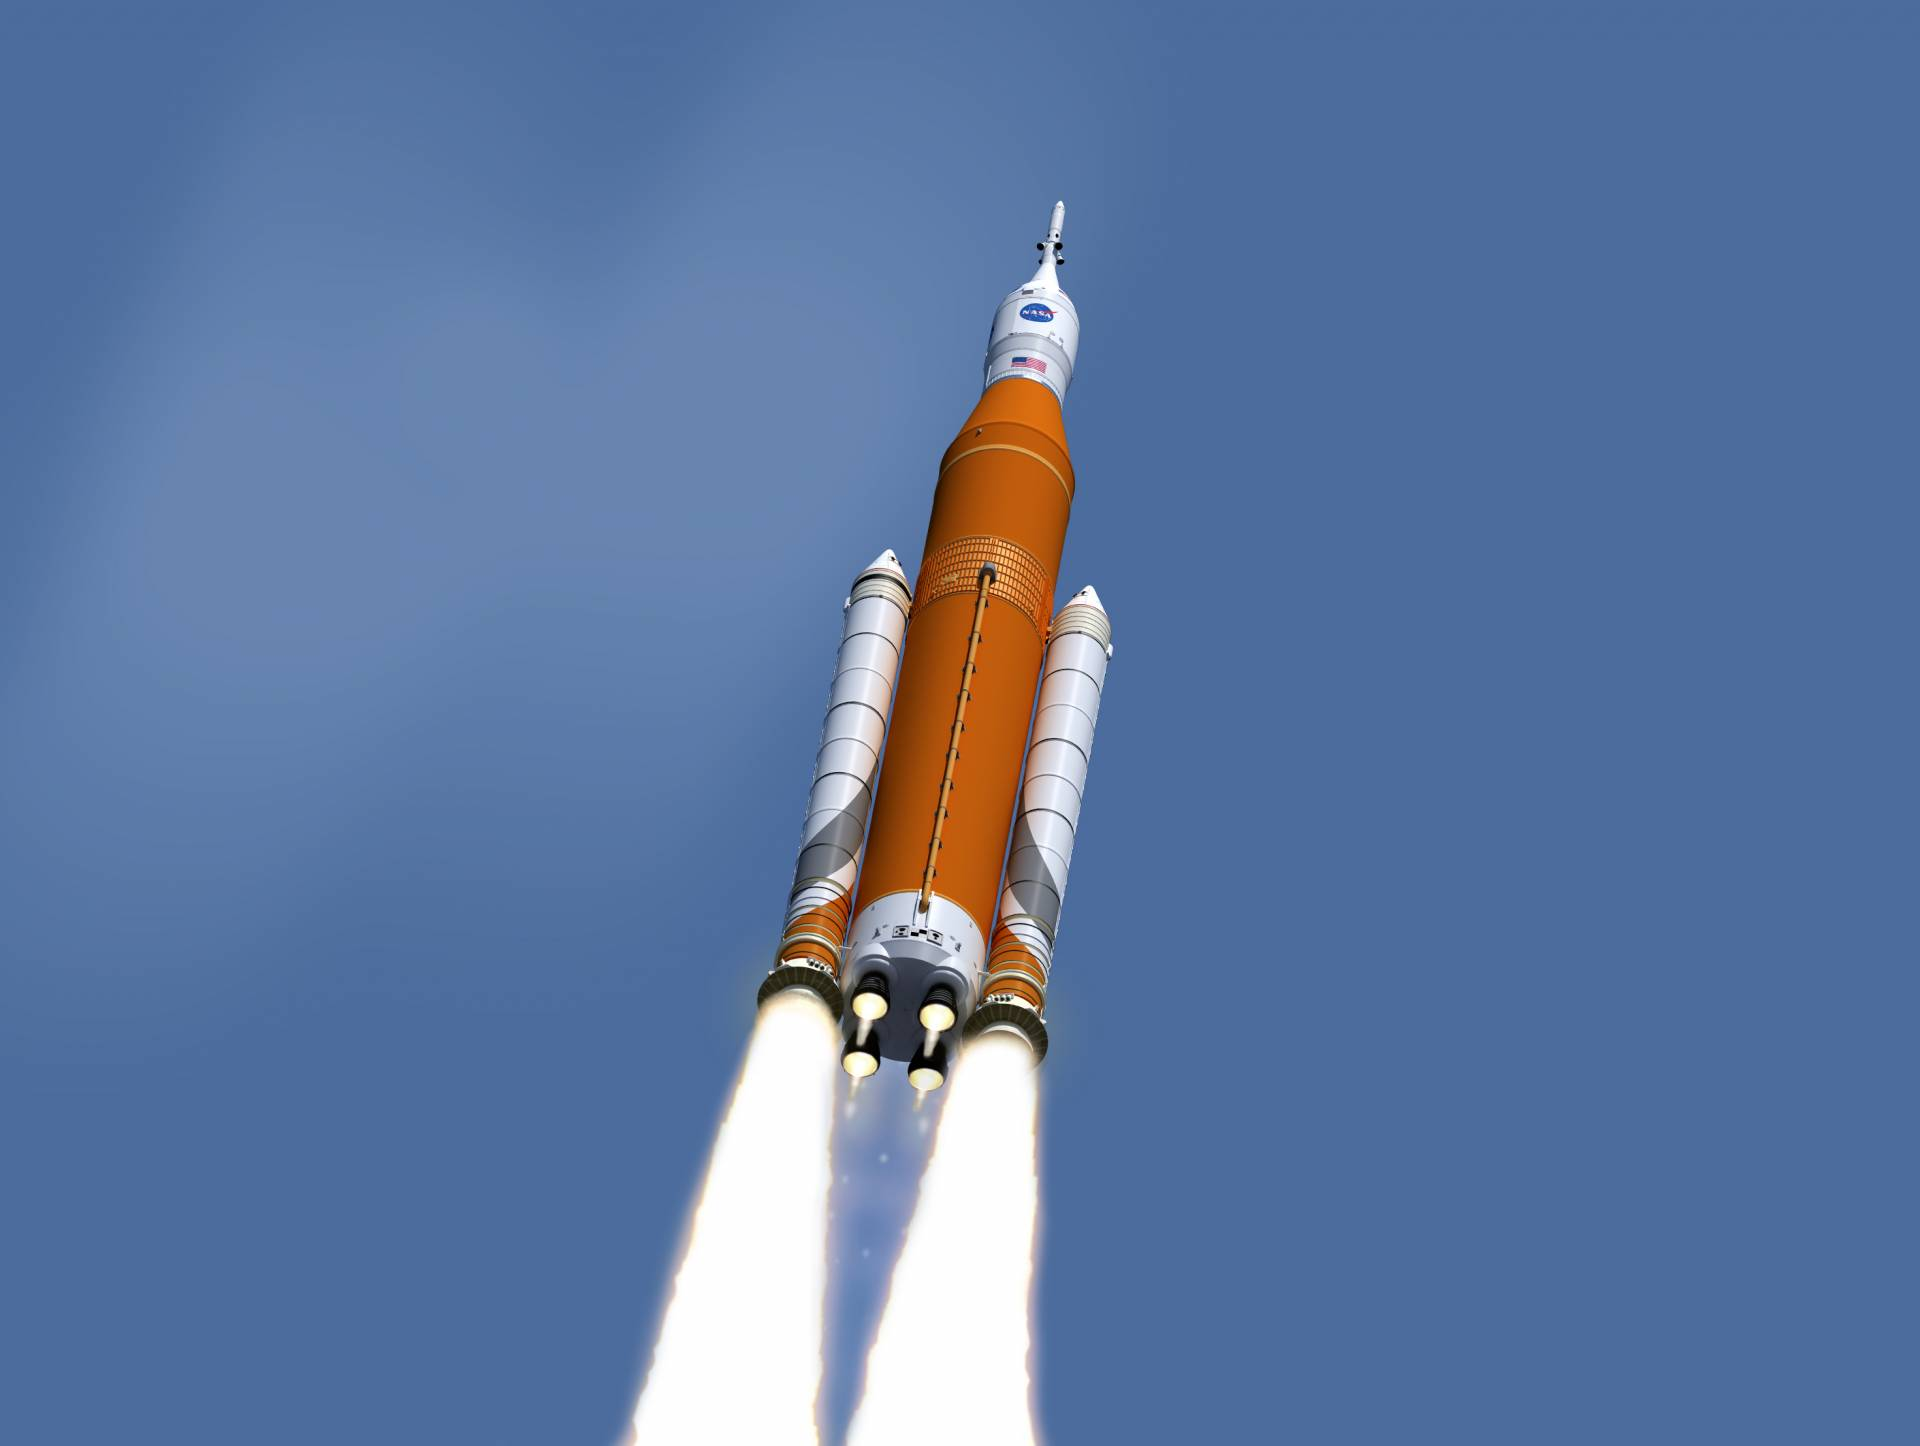 NASA said on Friday that it will not fly astronauts on Orion-SLS test flight around the moon. Image credit: NASA